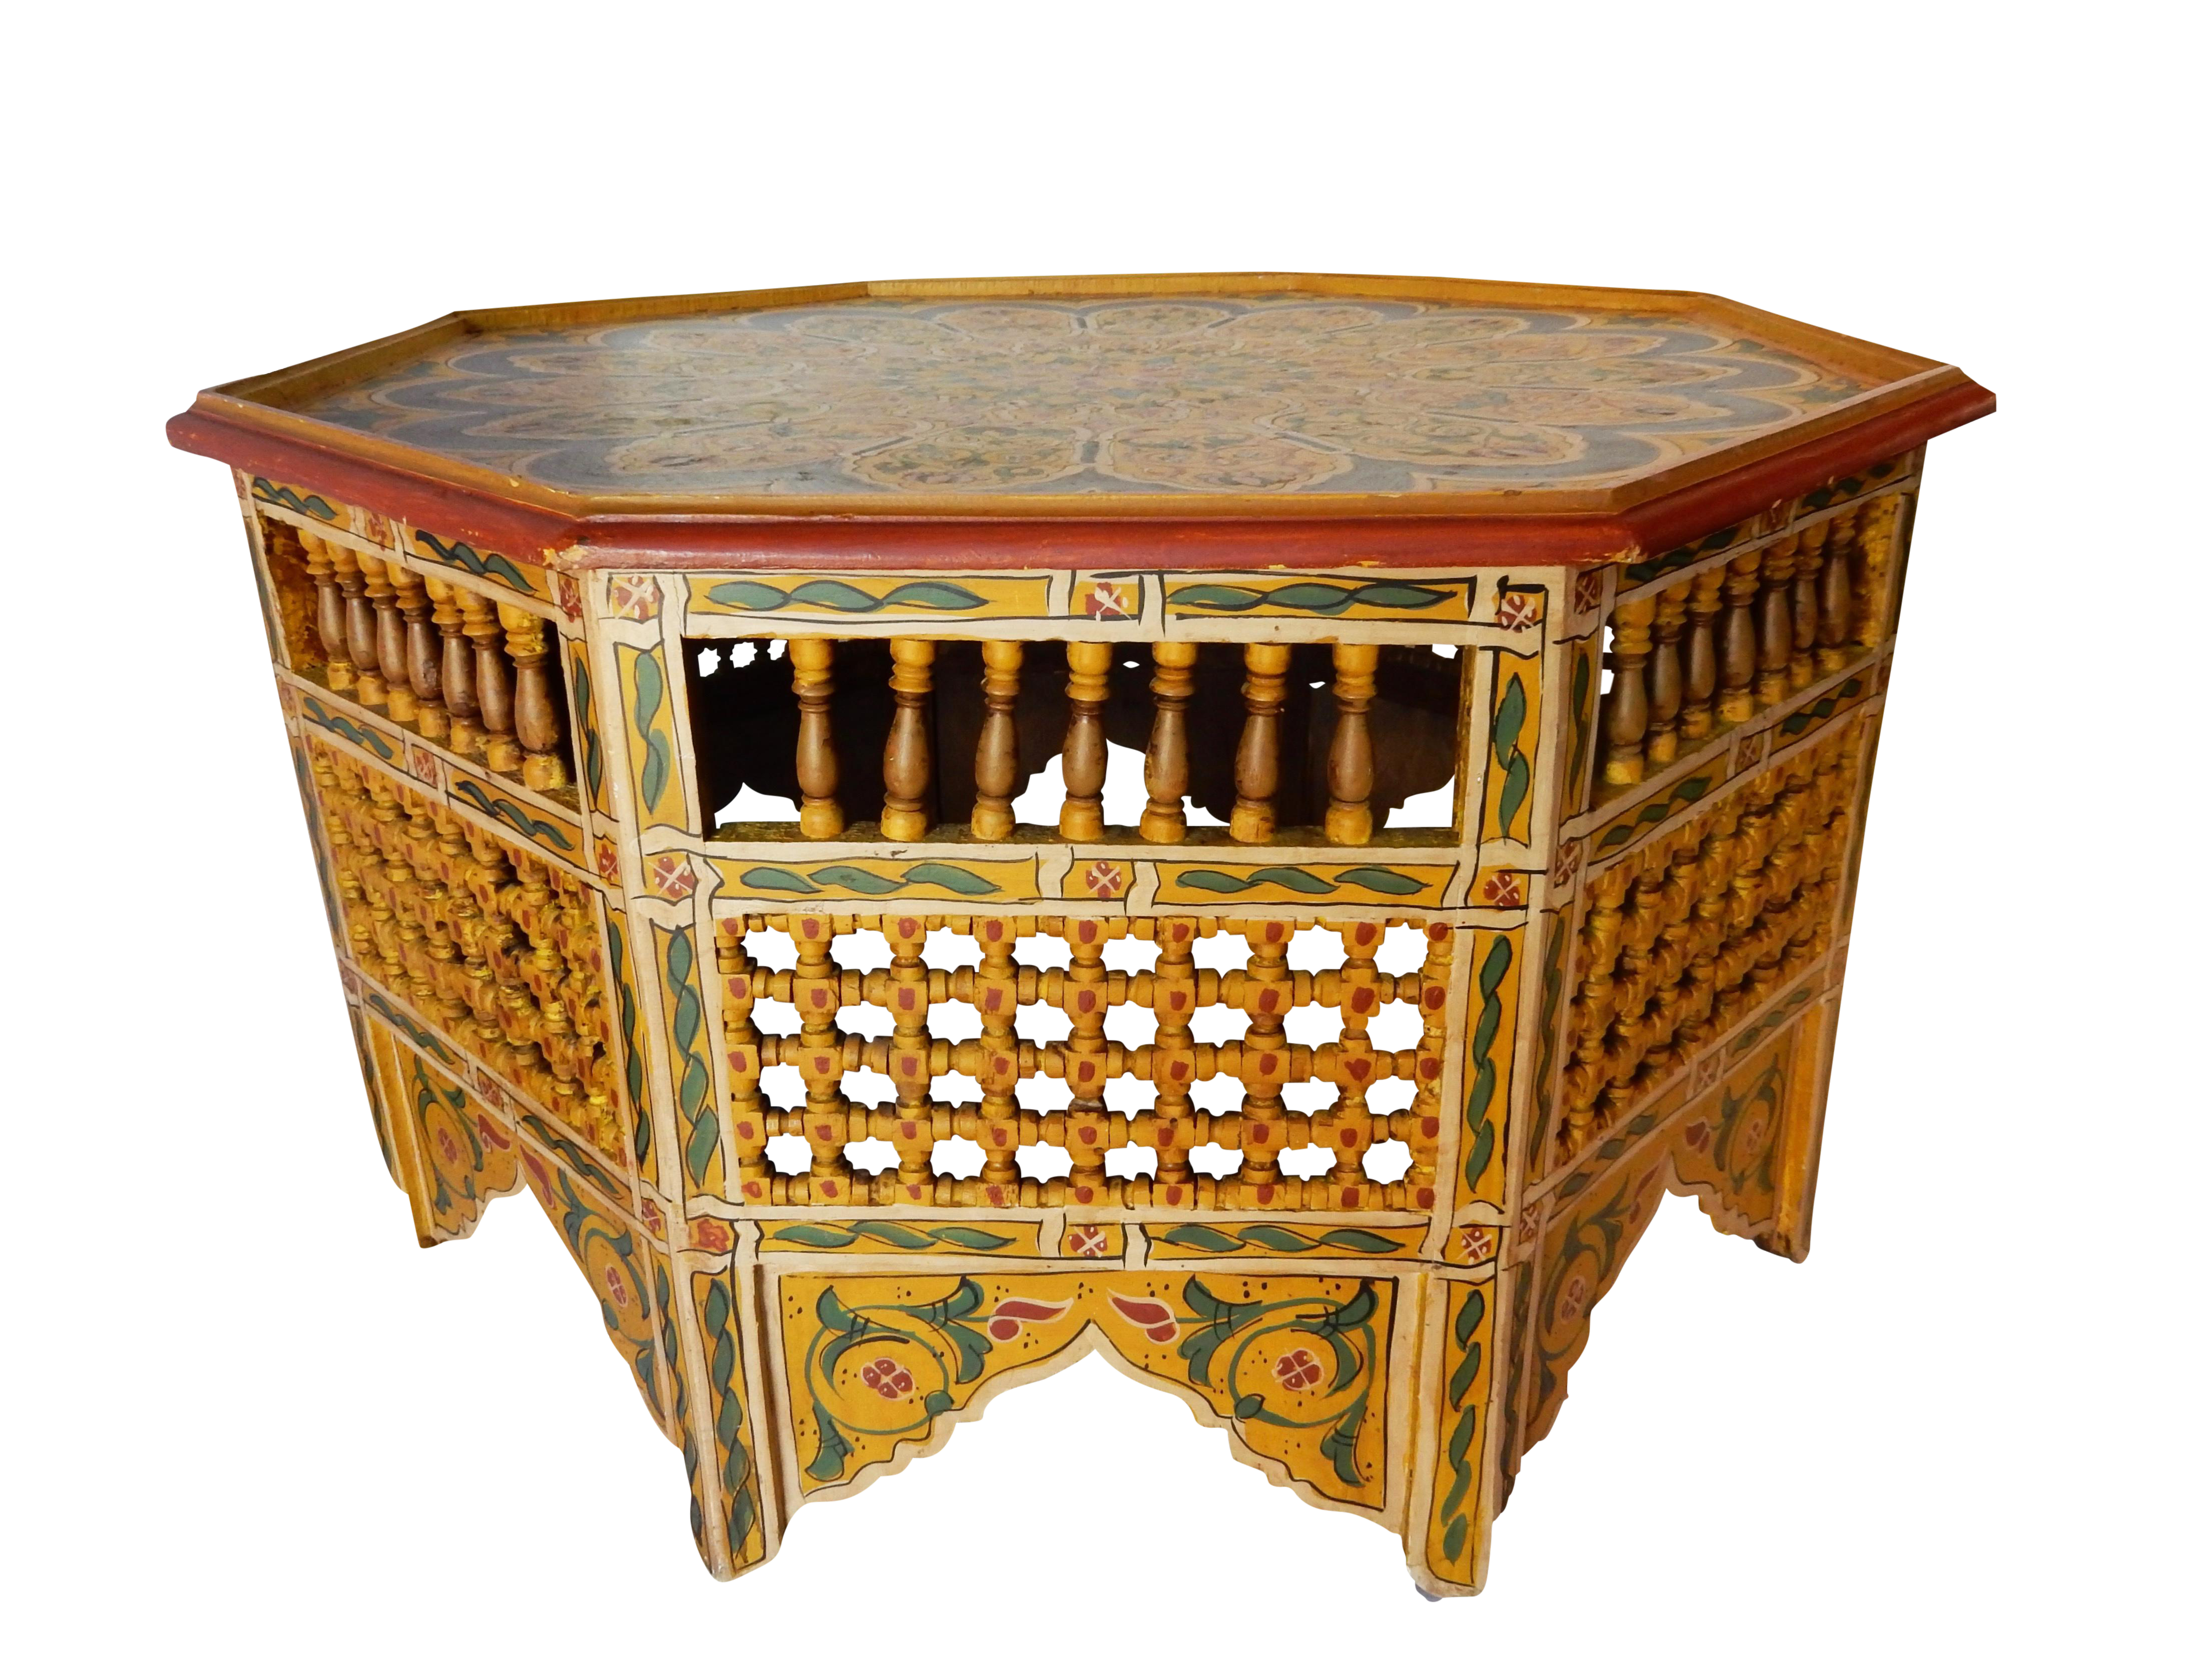 Moroccan 8 Sided Coffee Table